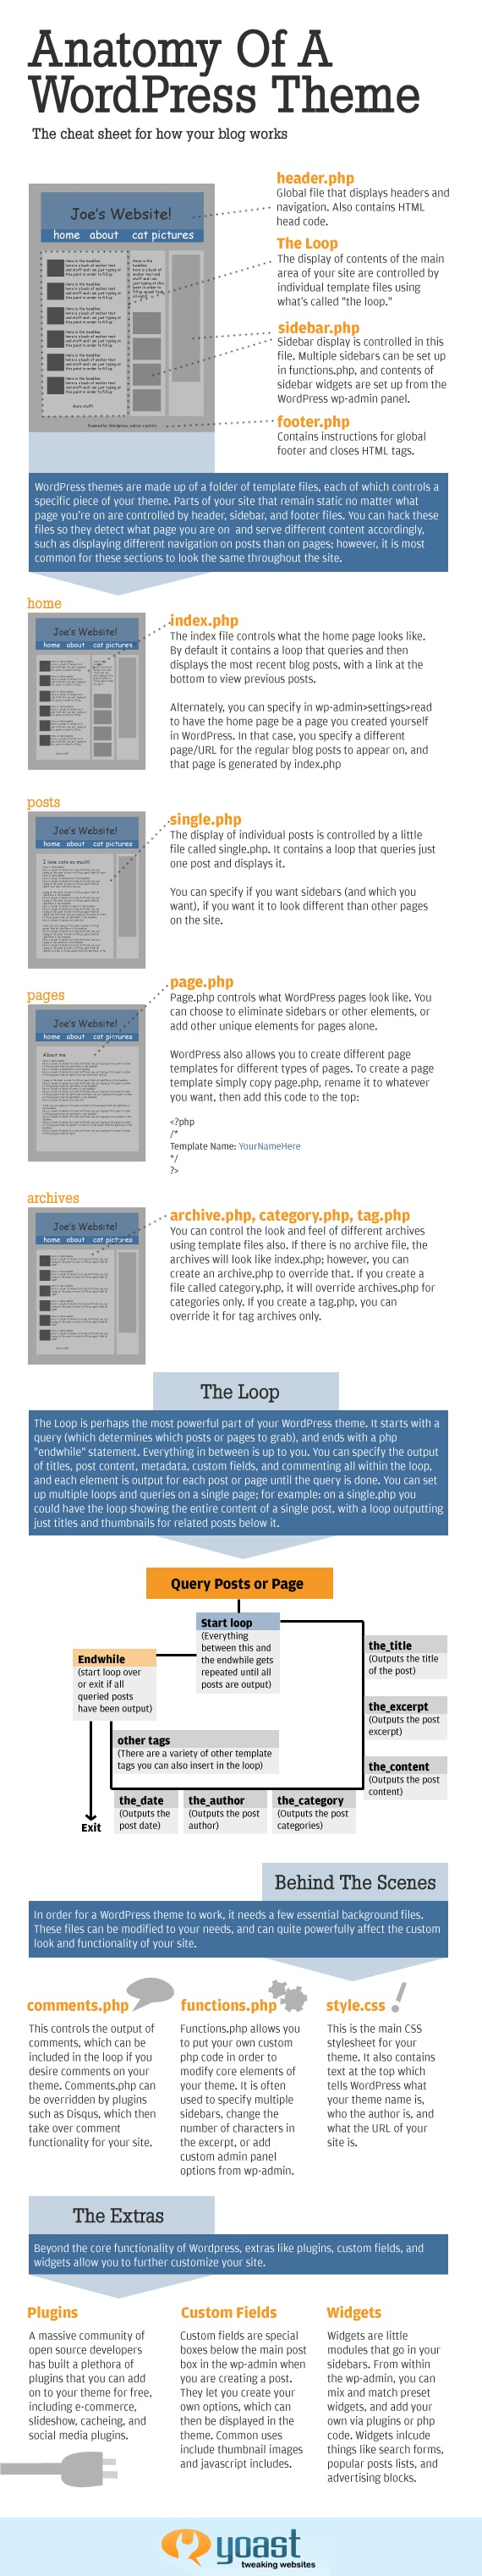 WordPress Anatomy Infographic